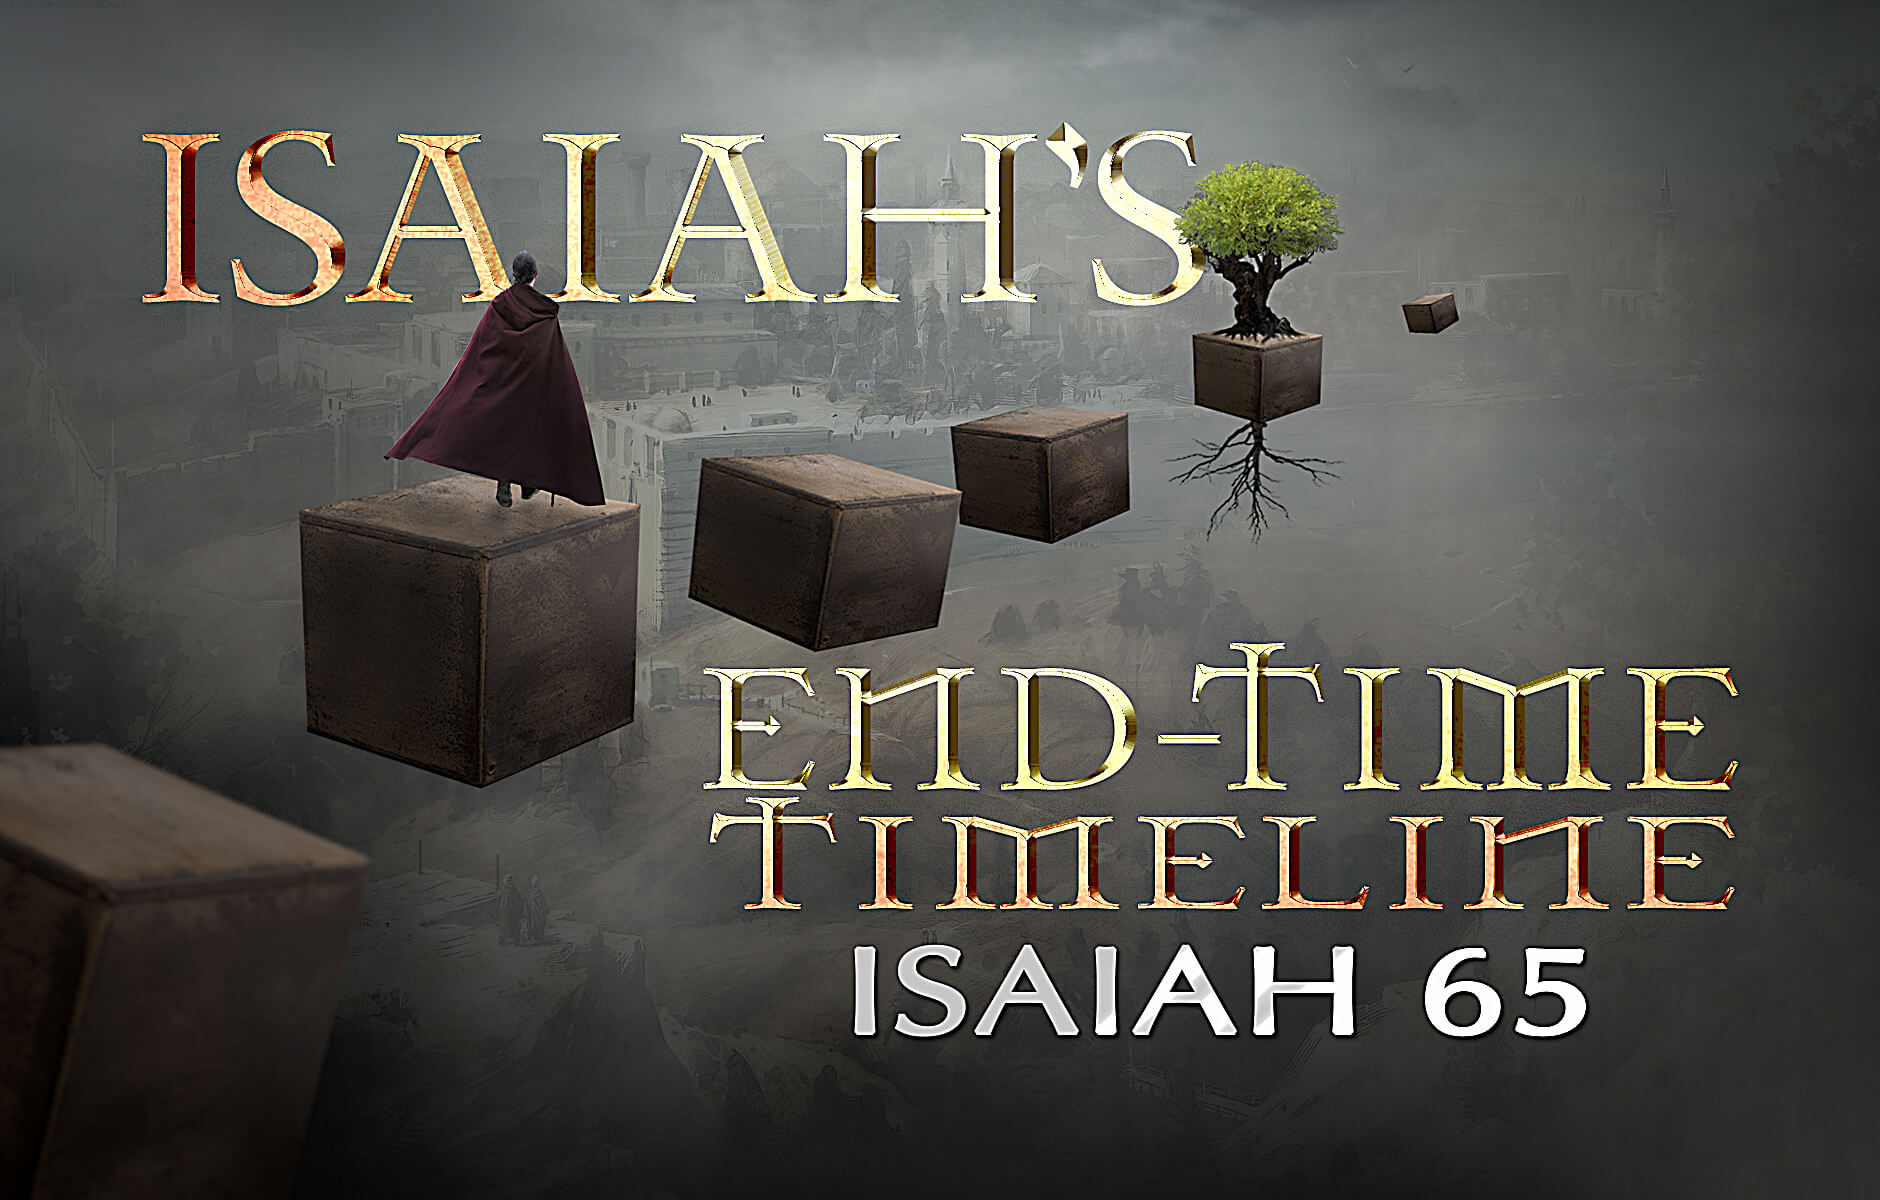 Isaiah's End-time Timeline Chapter 65